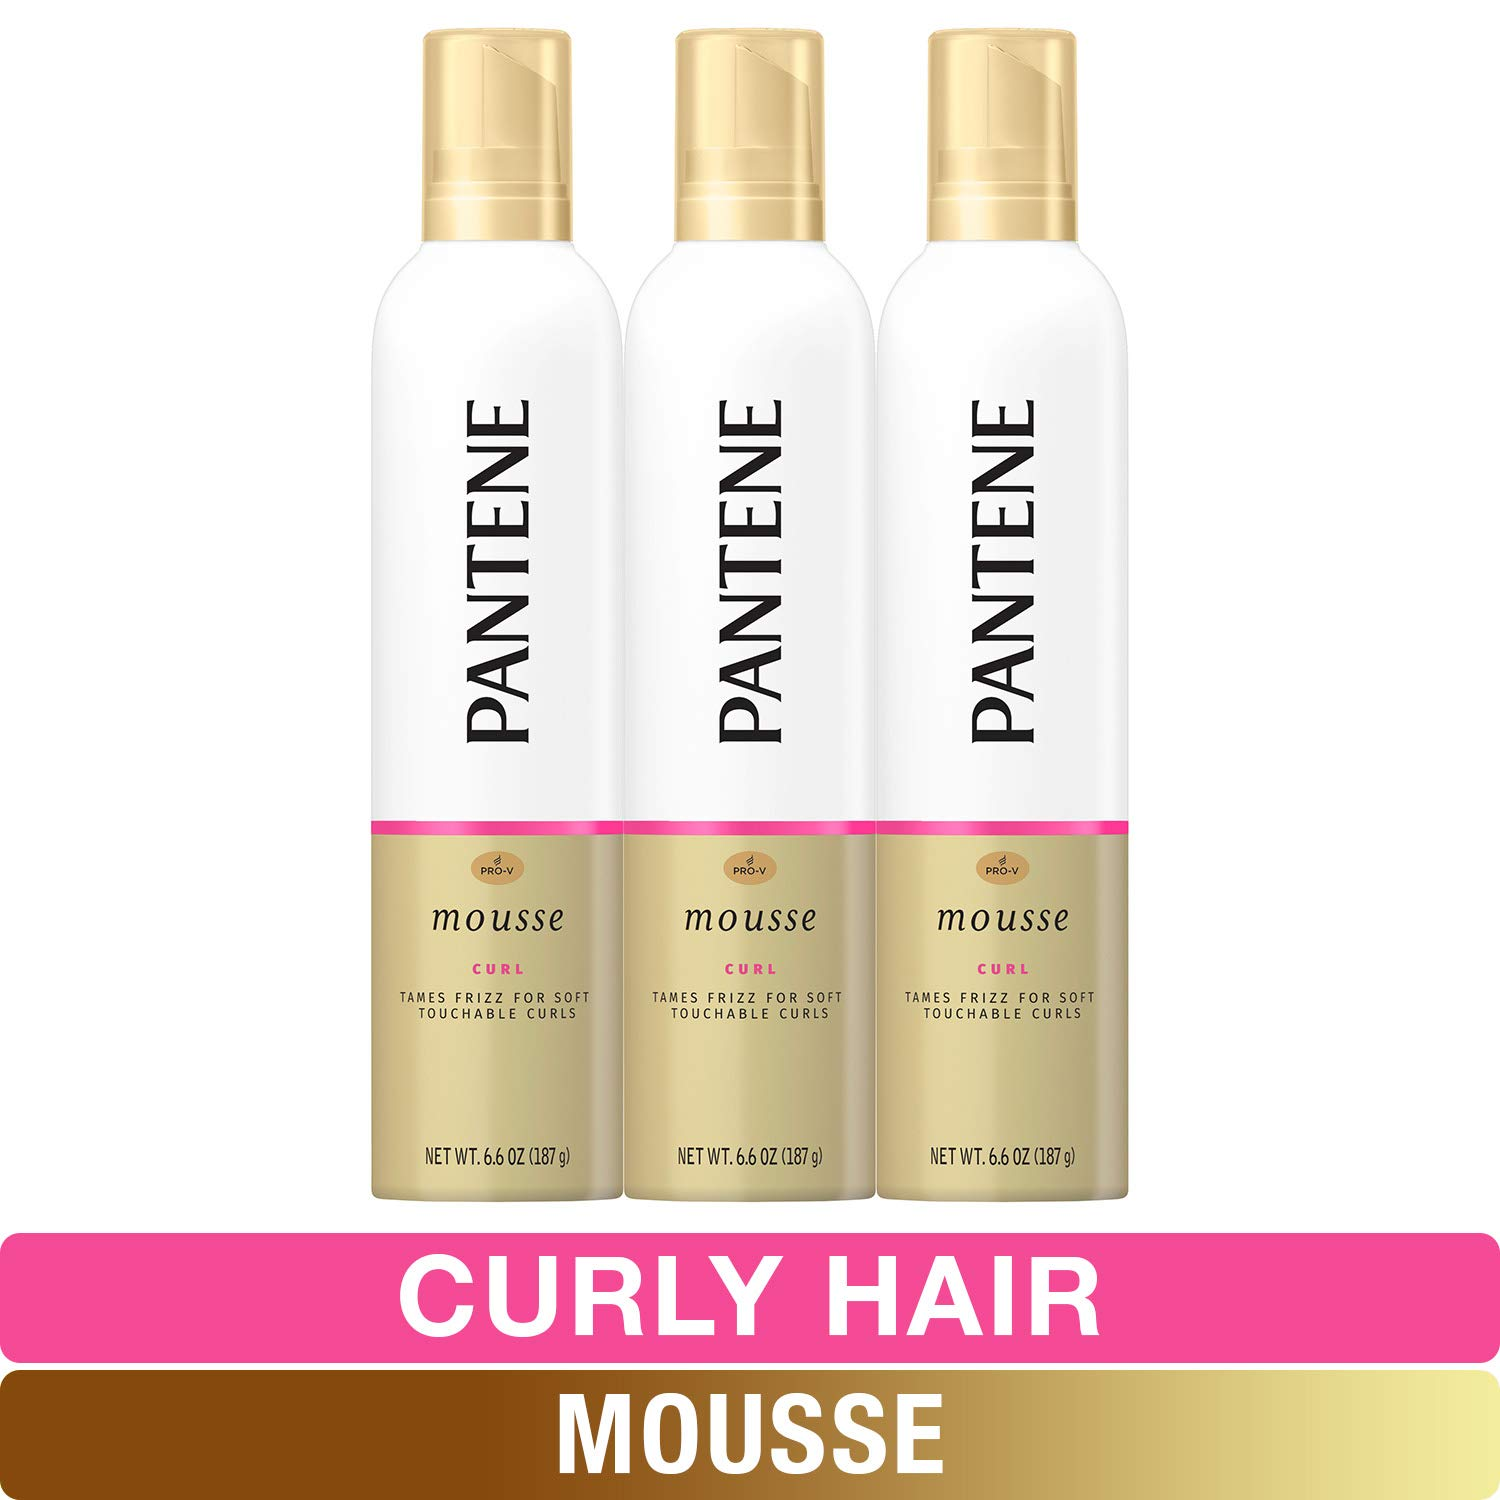 Pantene, Curl Mousse, Tame frizz for Soft Touchable Curls, Pro-V, For Curly Hair, 6.6 Ounce, Pack of 3